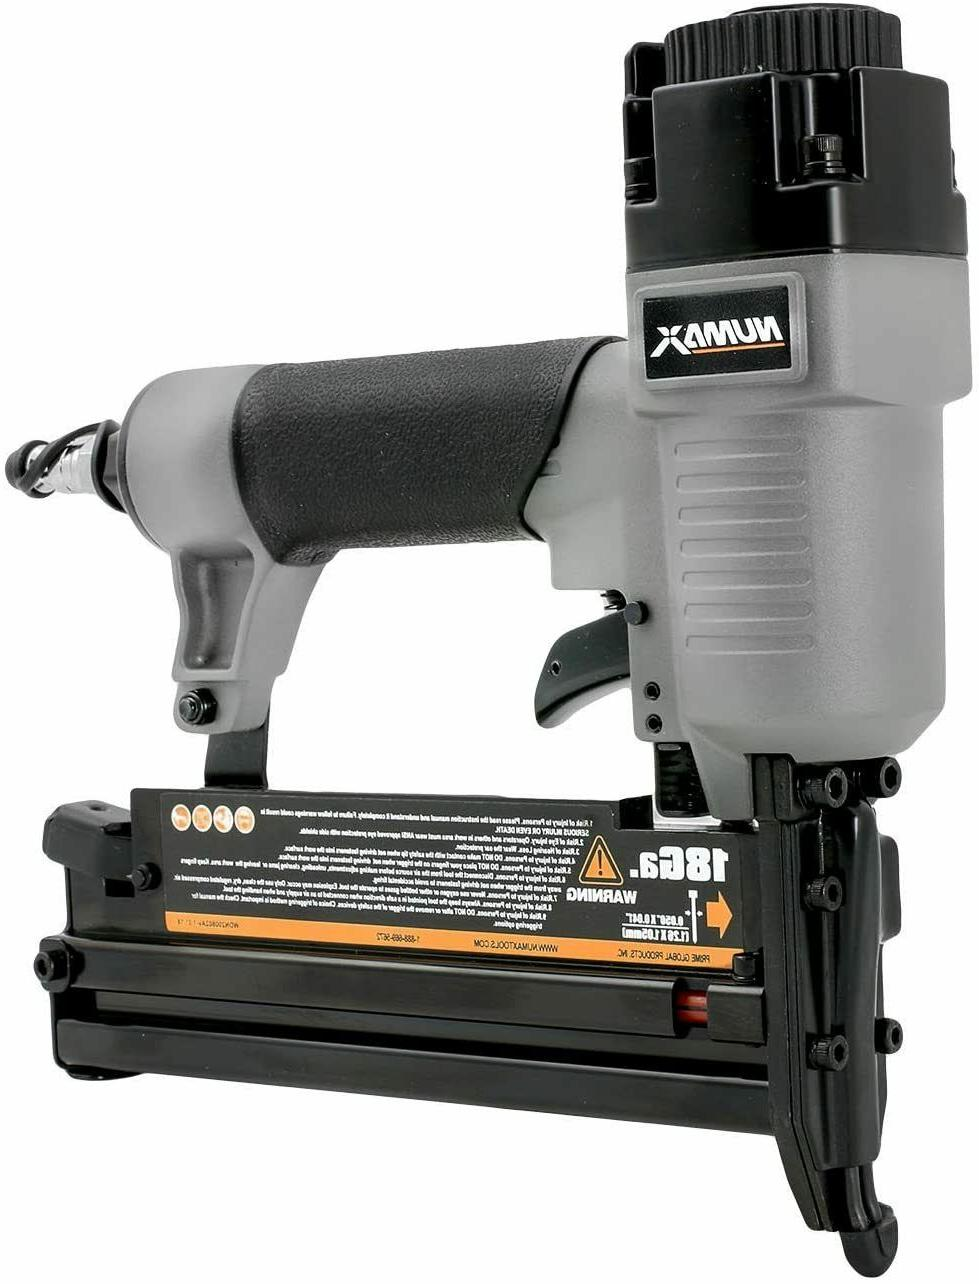 NEW Pneumatic 3-in-1 16-Gauge and 18-Gauge 2 in. Finish Nail